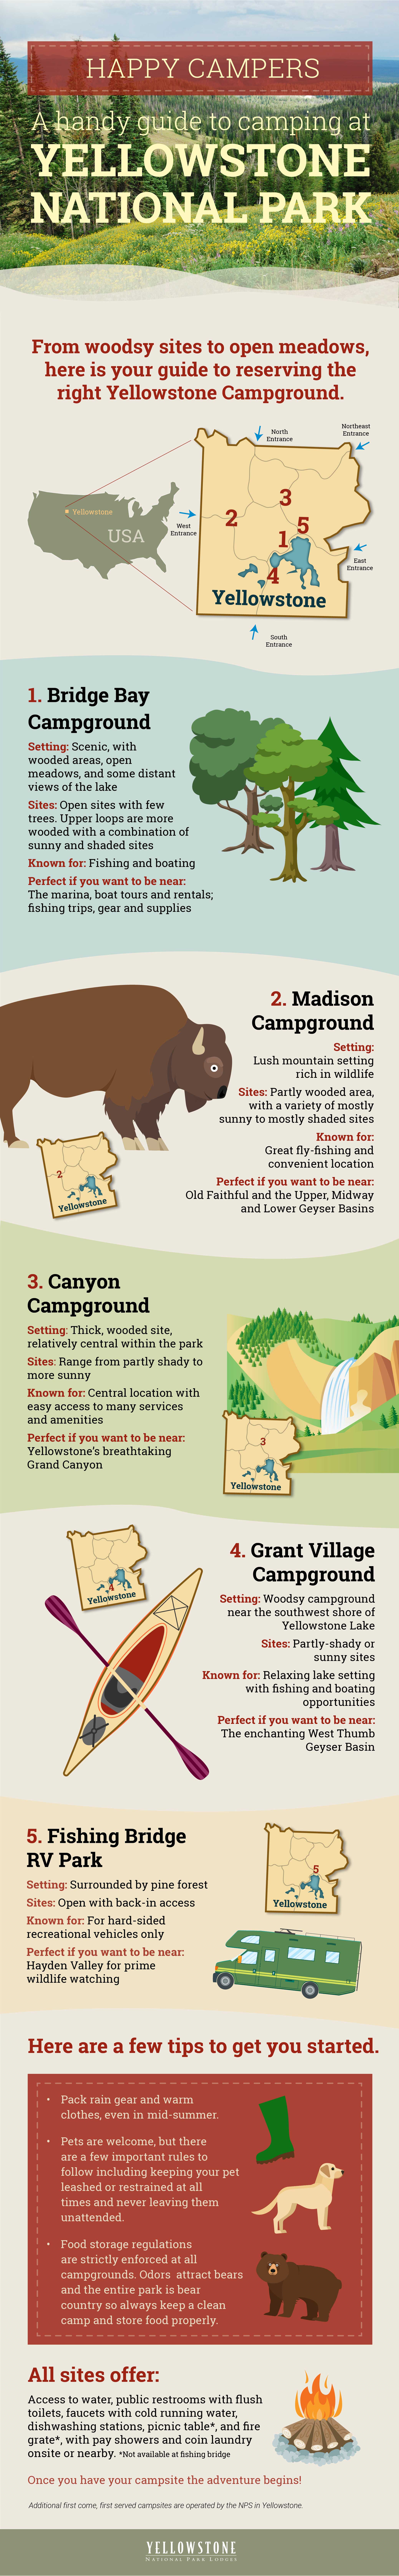 Camping guide infographic